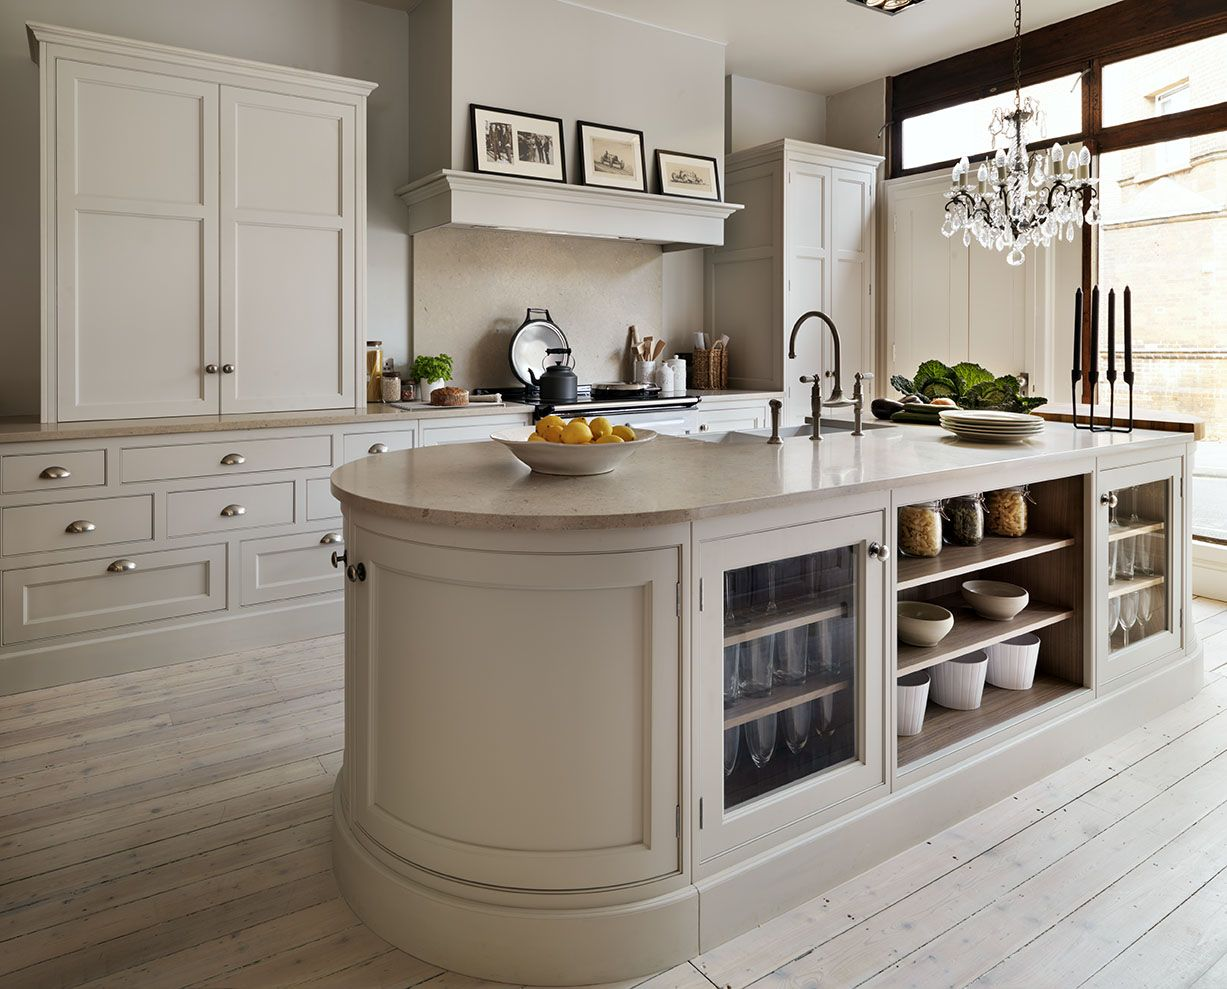 cream kitchen island cream kitchen love the curved island traditional kitchen design kitchen design taupe kitchen 9458